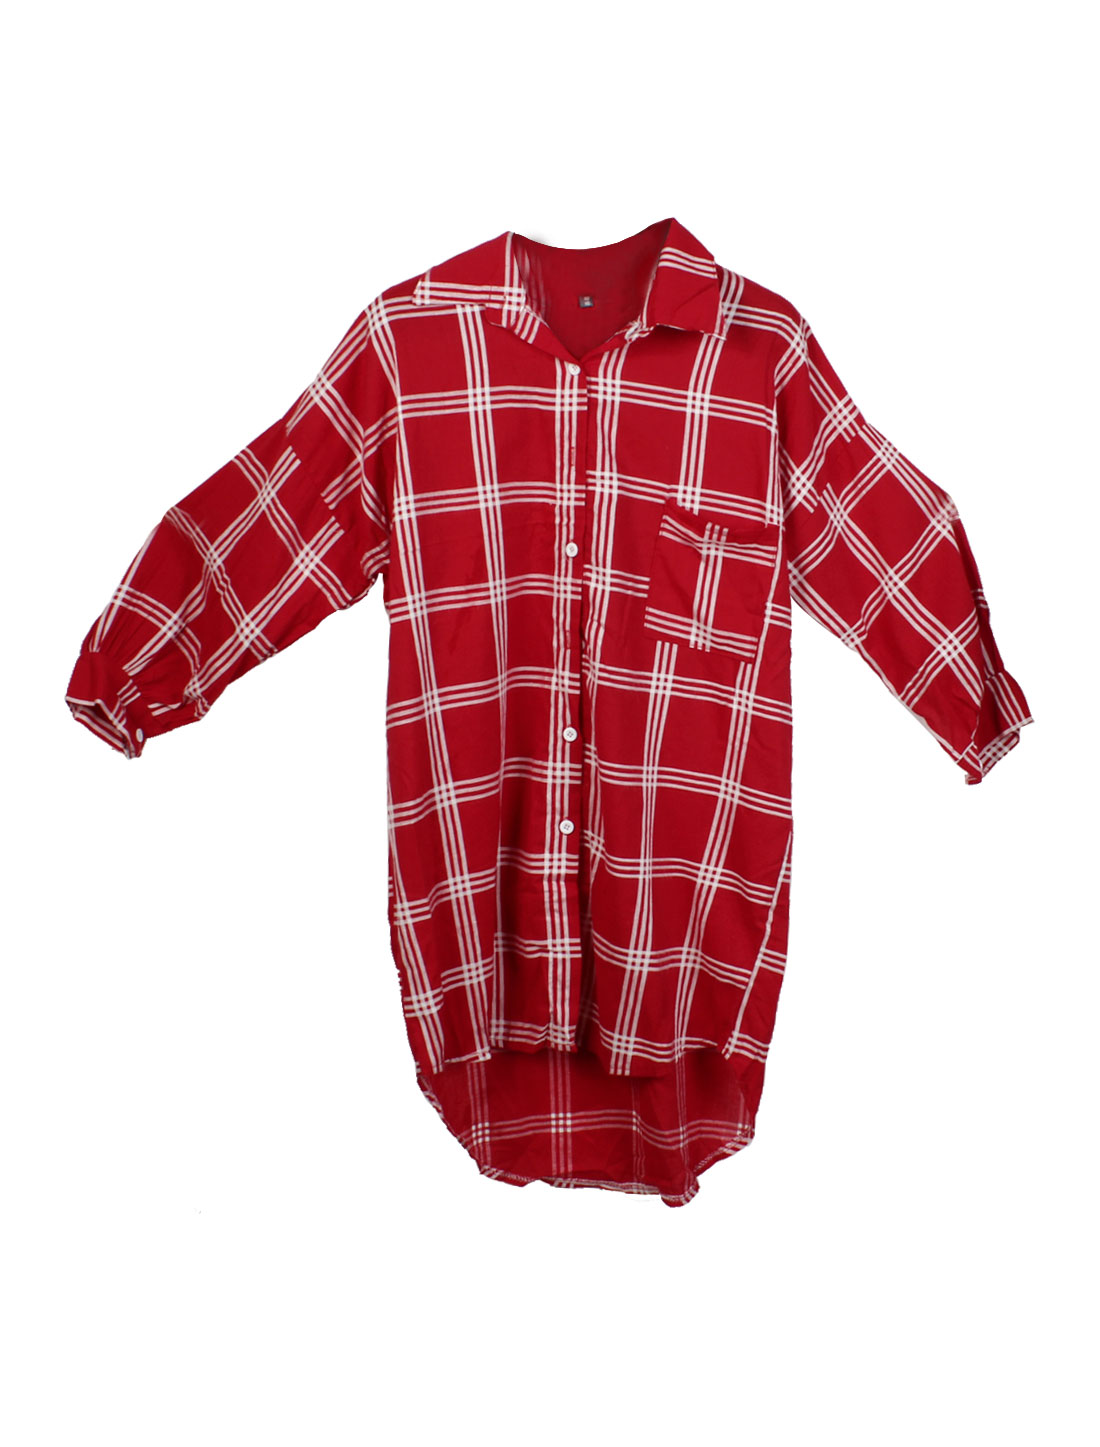 Lady Plaids Pattern Single Breasted Cozy Fit Casual Tunic Shirt Red White XS